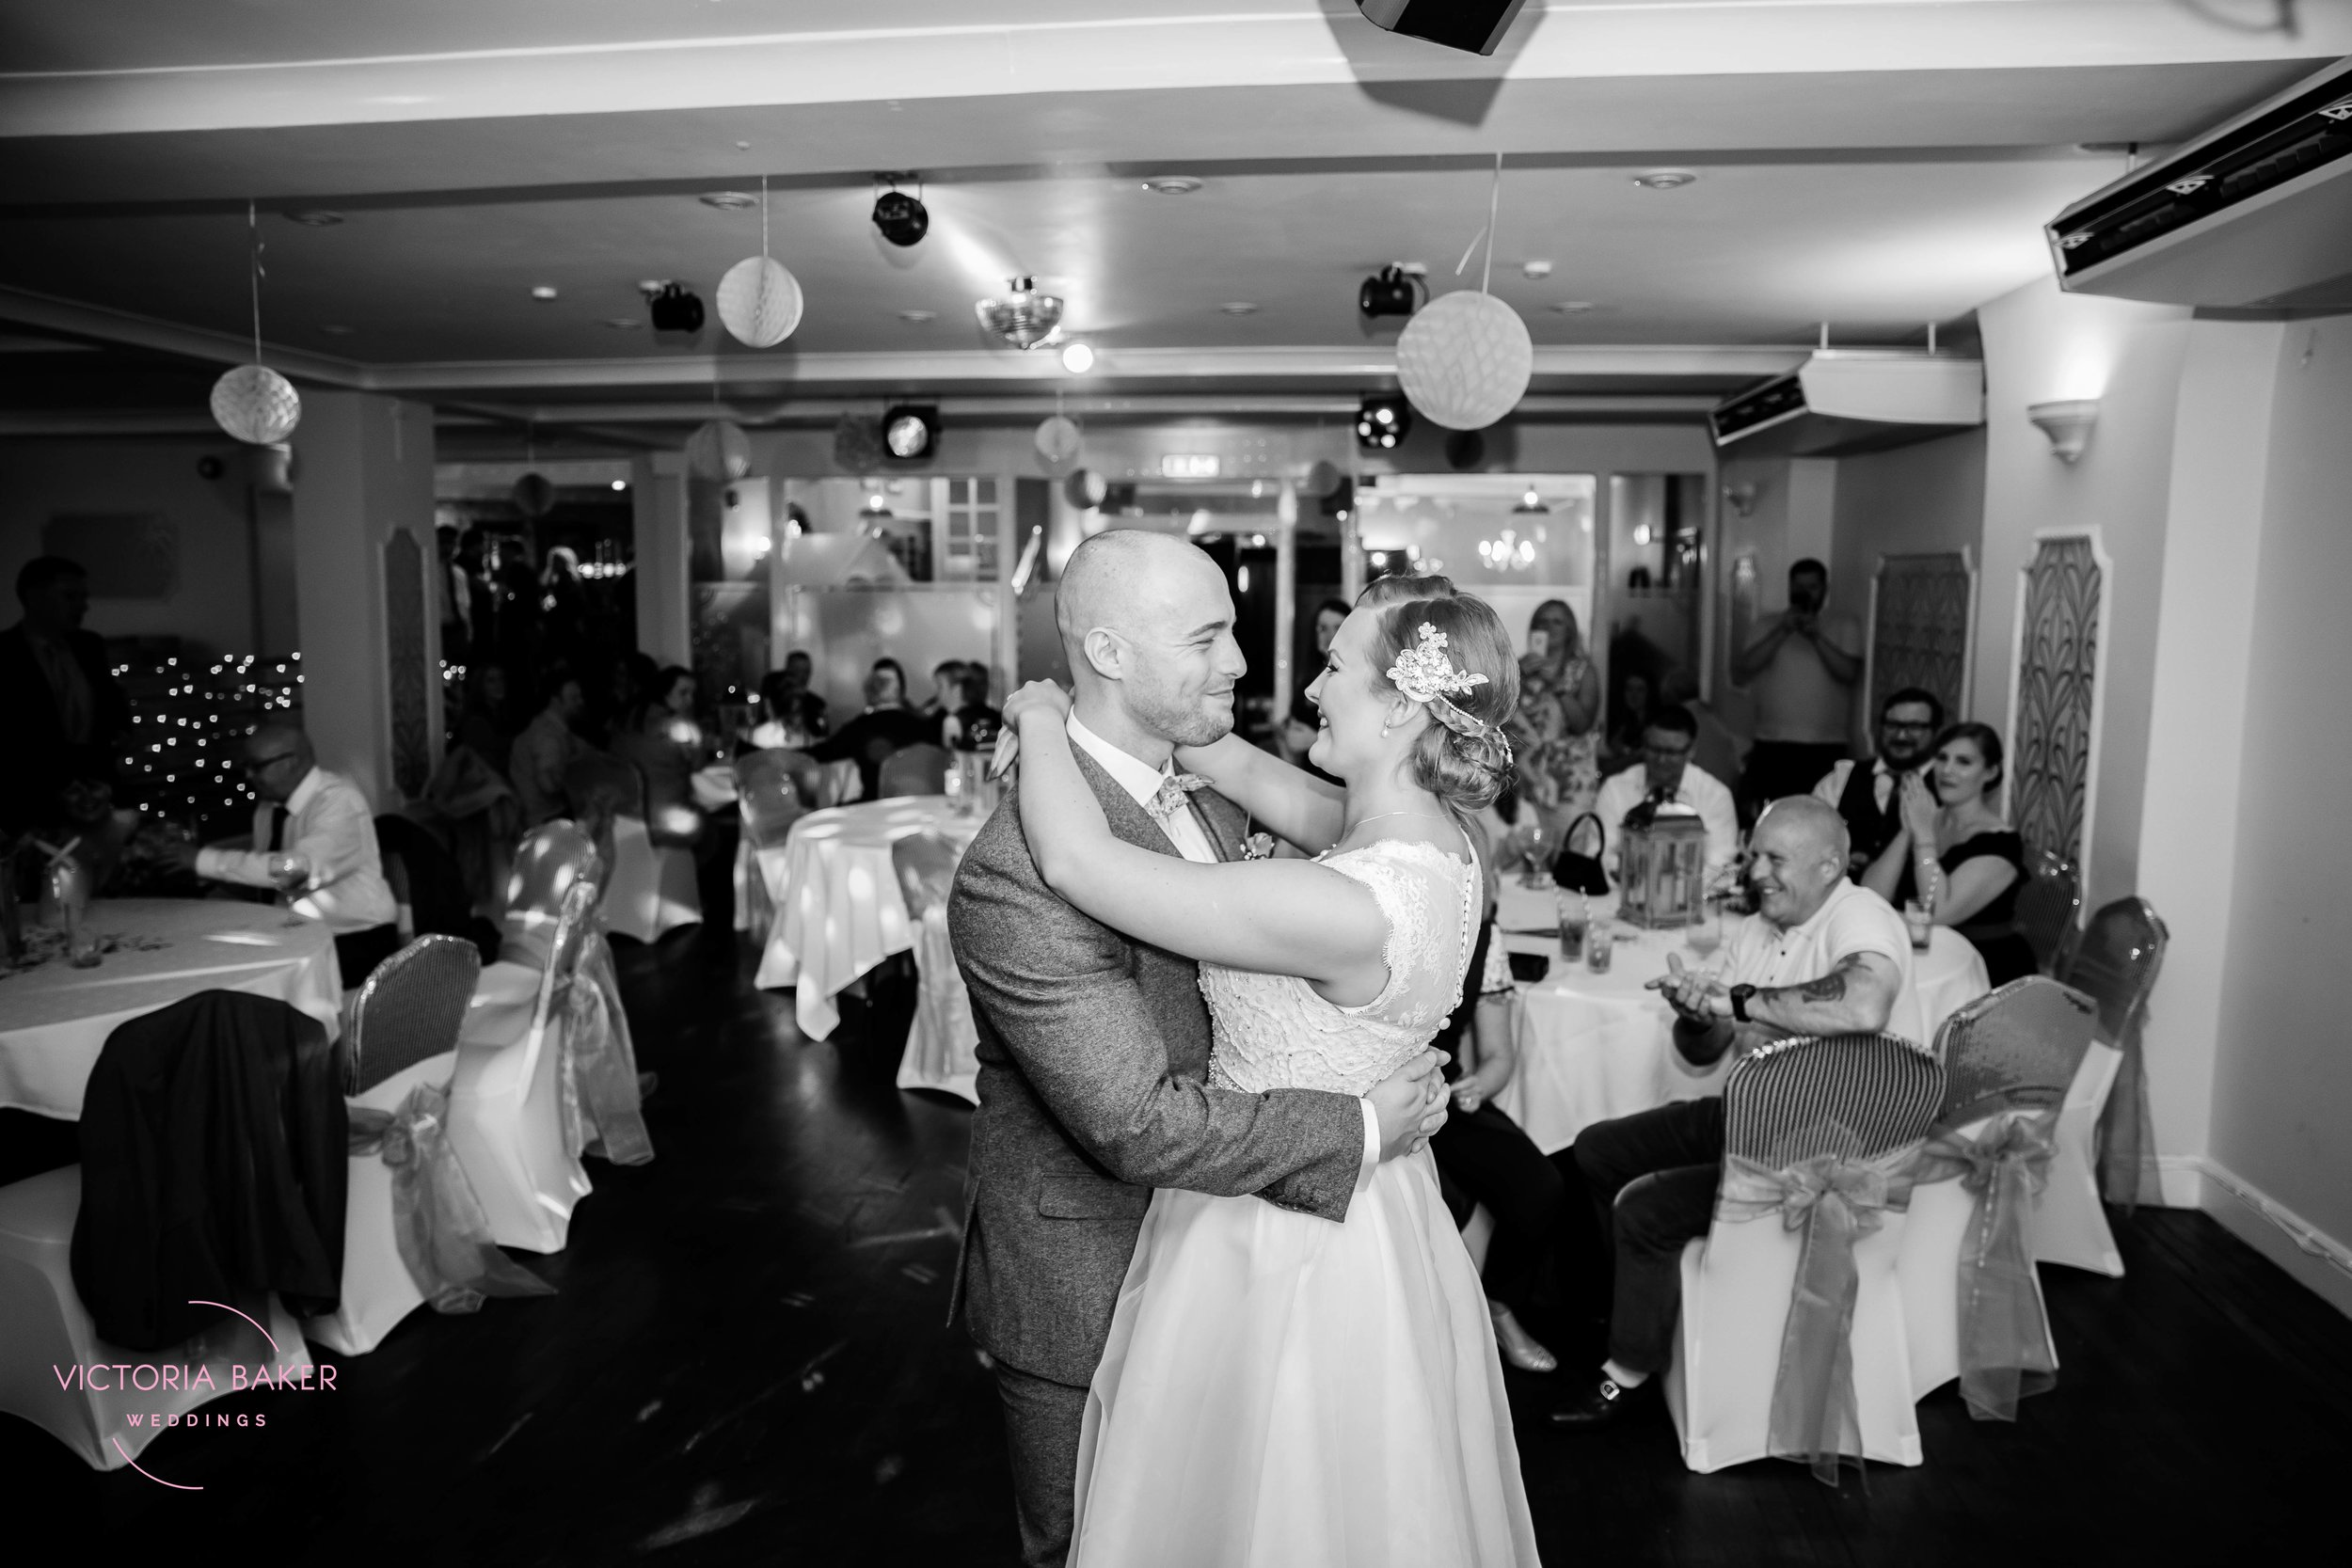 VICTORIABAKERWEDDINGSSam&AnthonySaltburnWedding-501.jpg